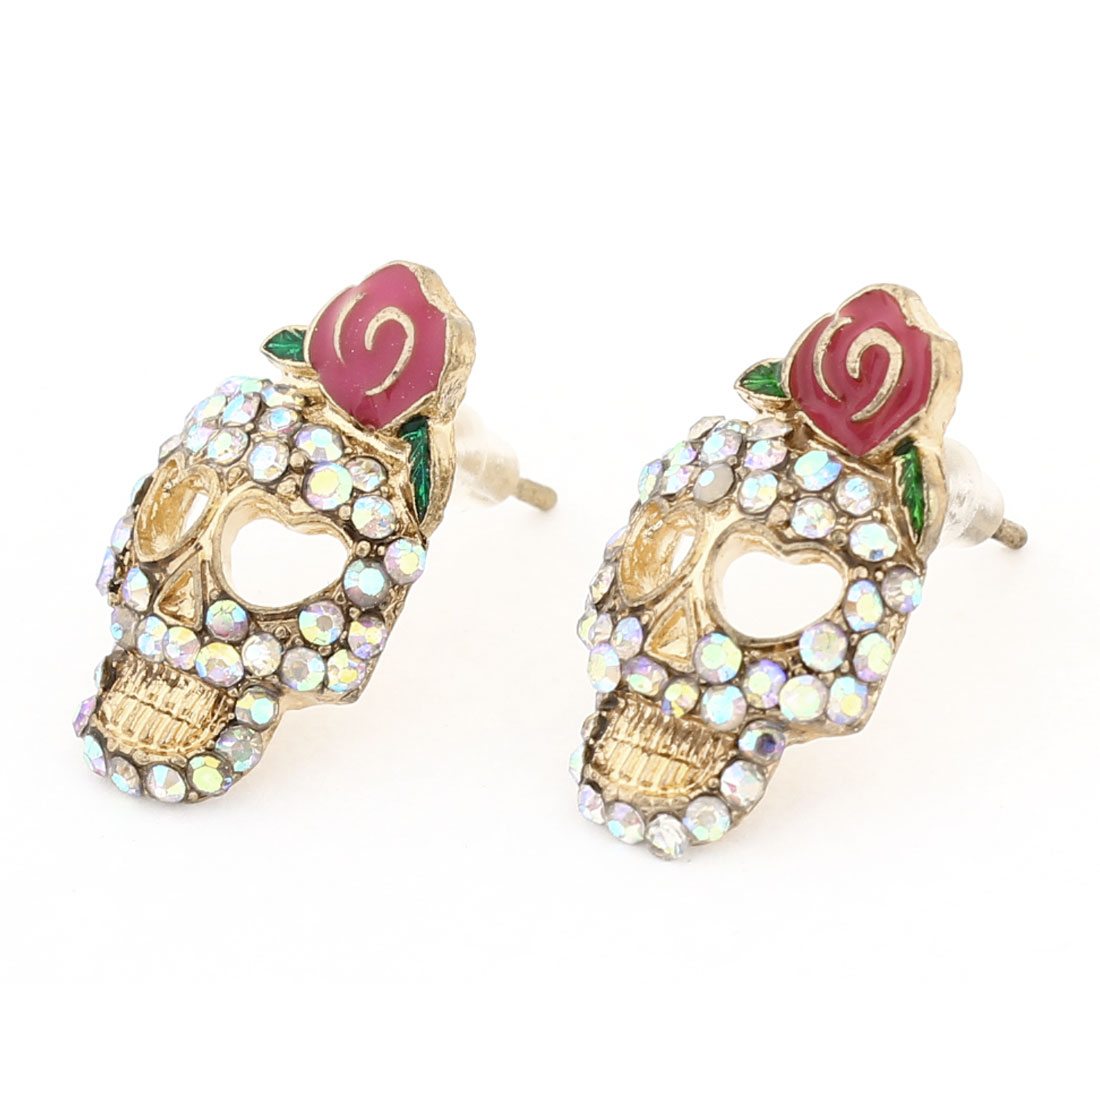 Pair Rhinestones Rose Skull Shaped Ornament Stud Earrings Gold Tone for Women